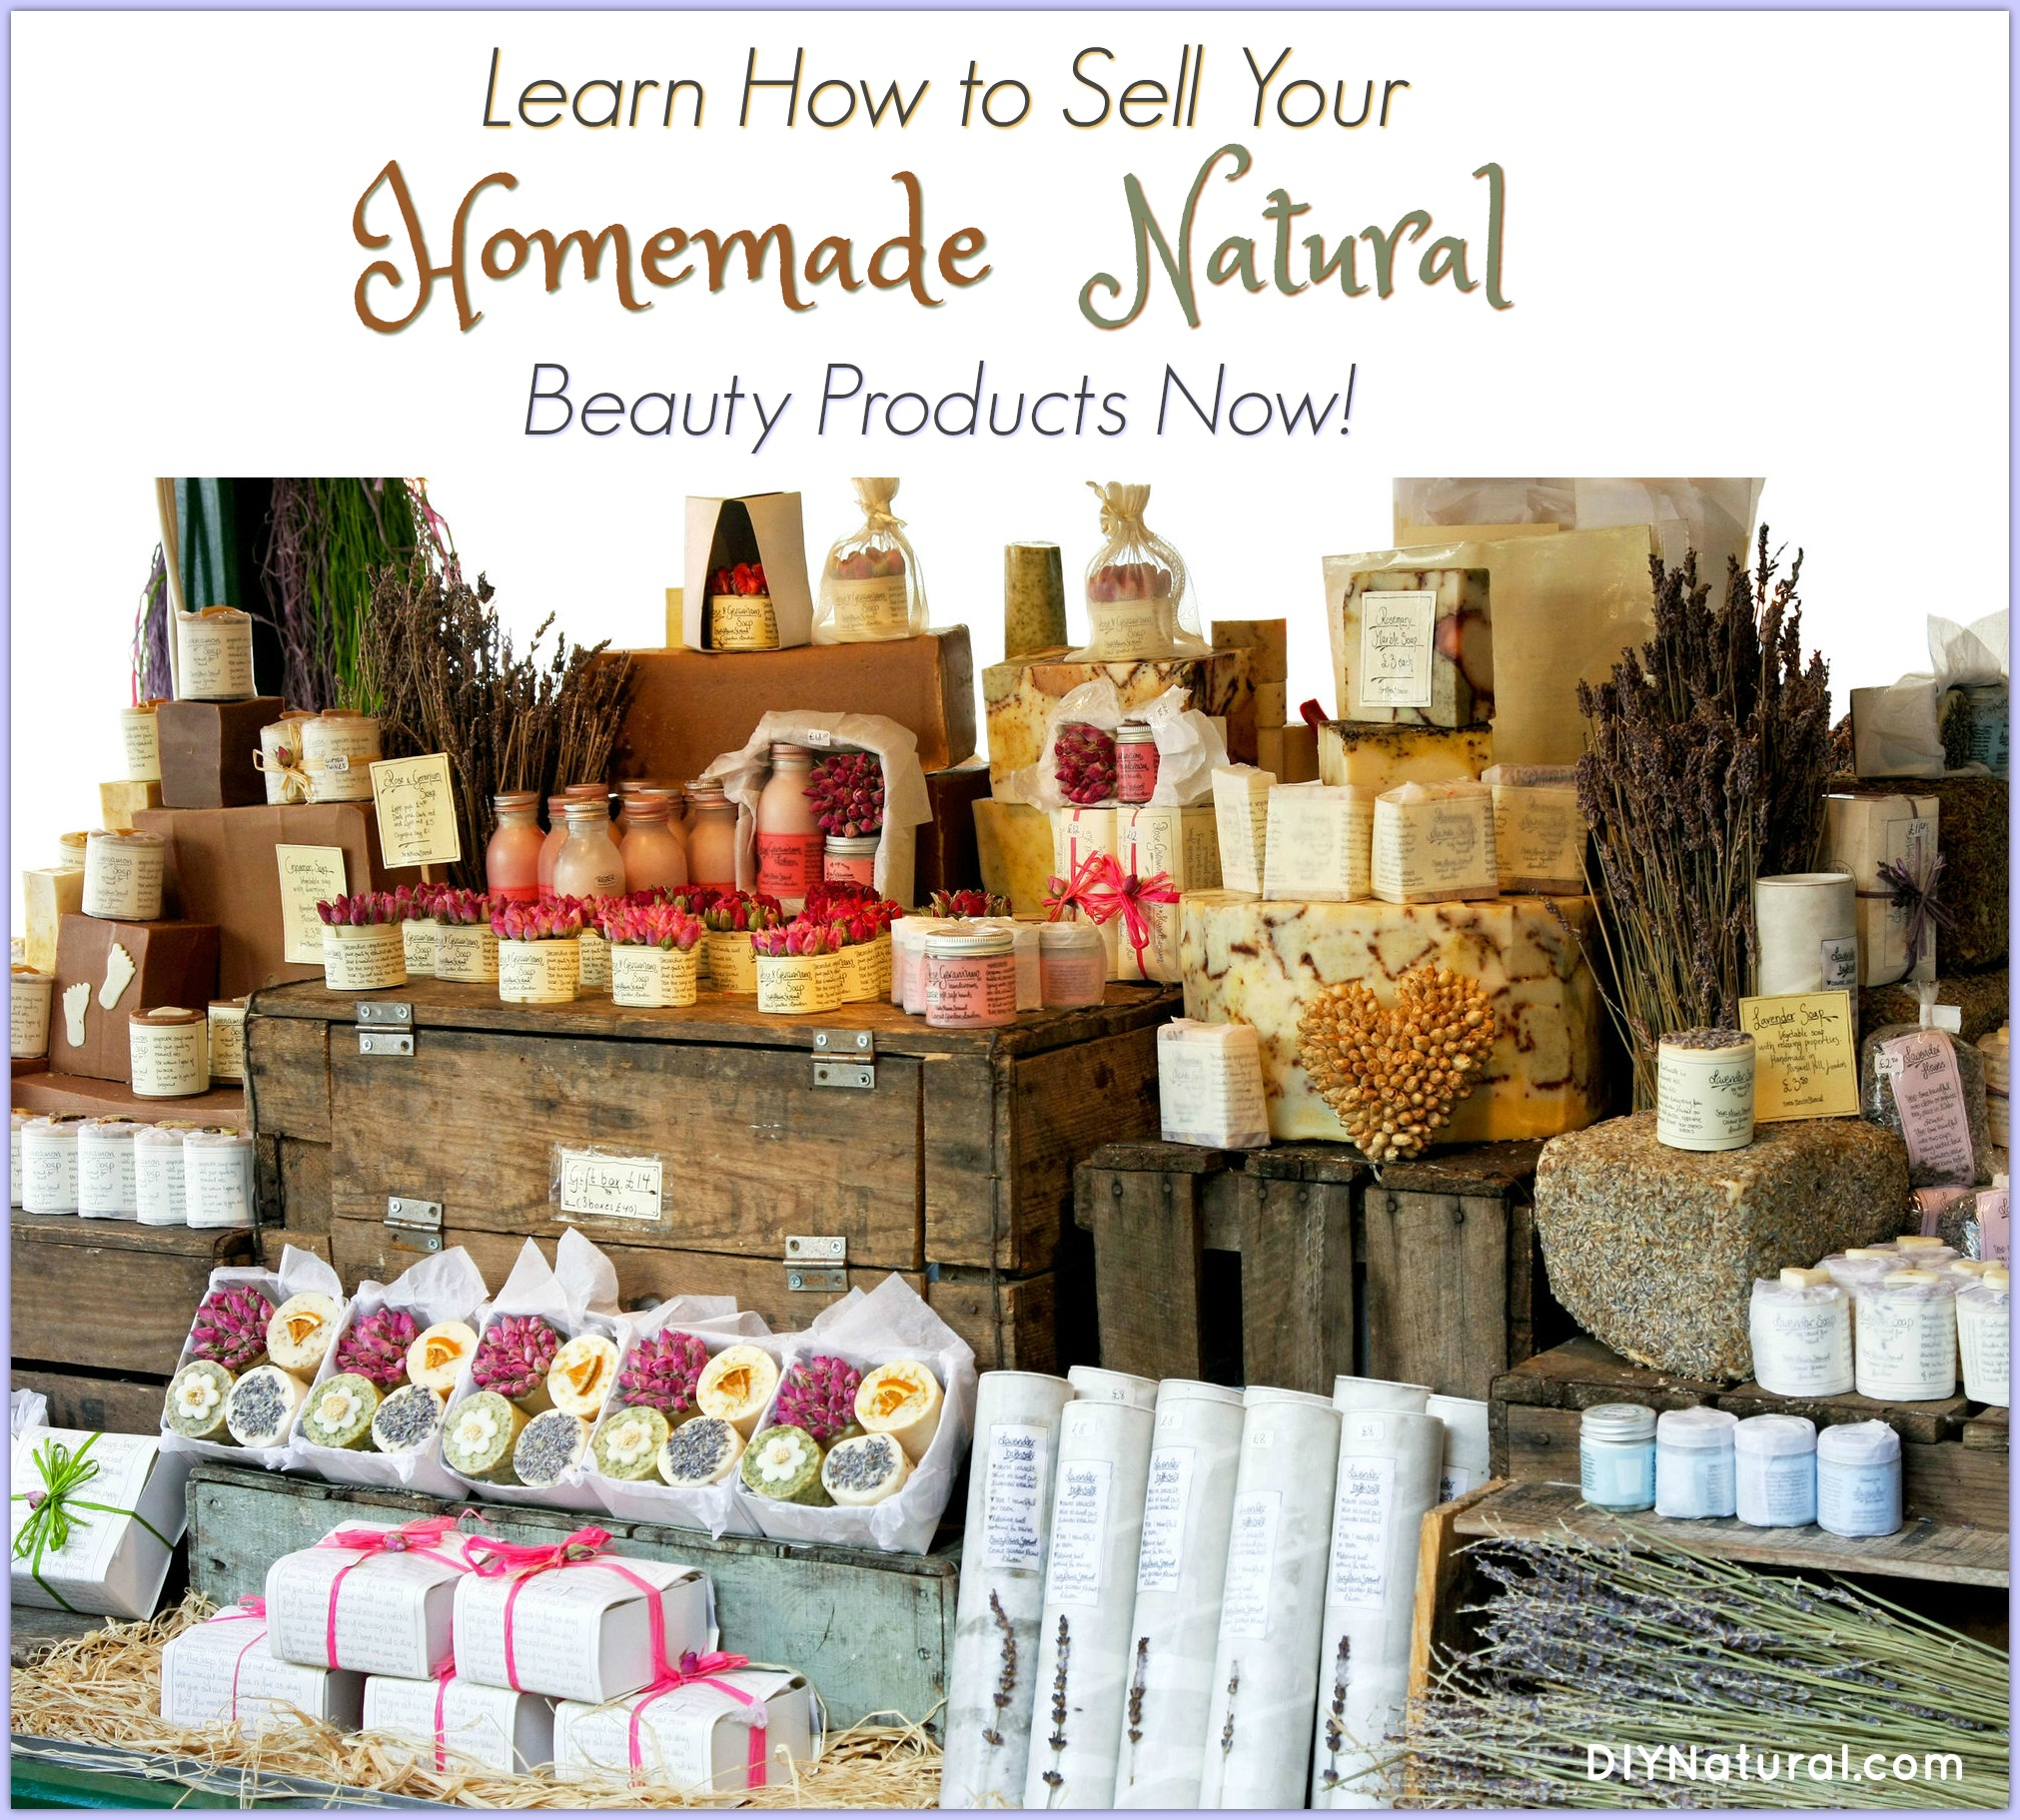 how to sell homemade products health and beauty edition